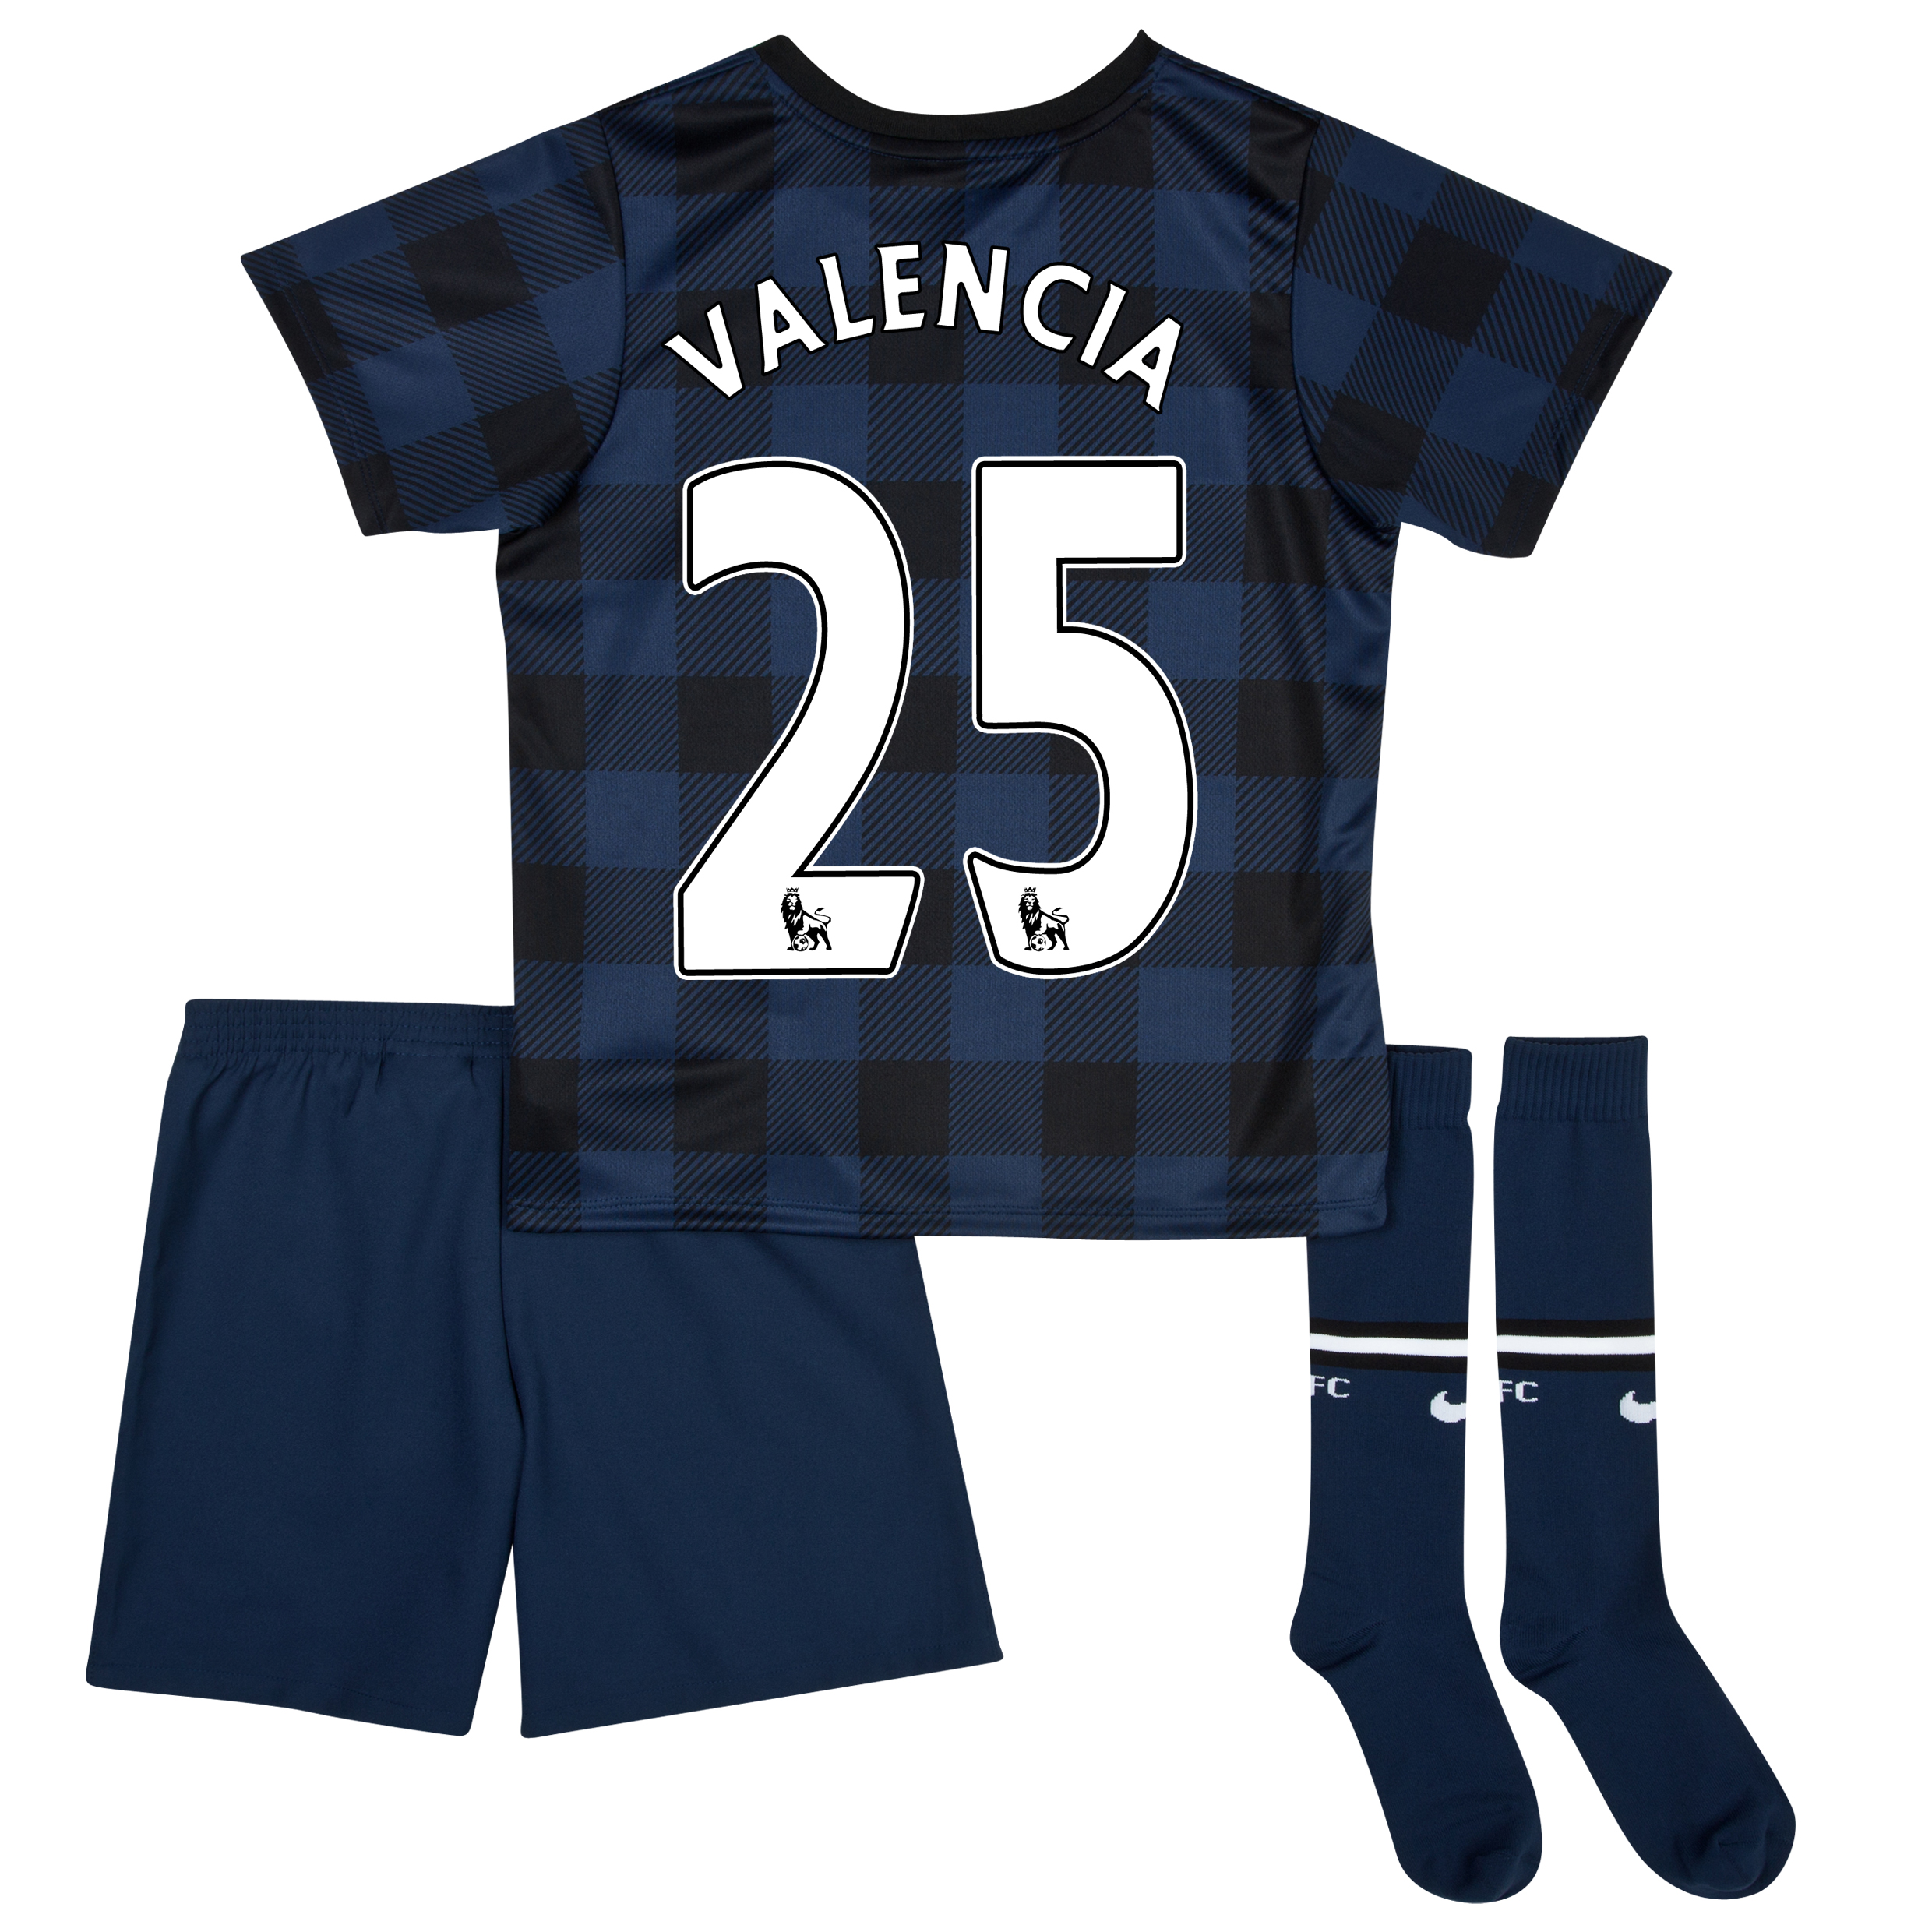 Manchester United Away Kit 2013/14 - Little Boys with Valencia 25 printing